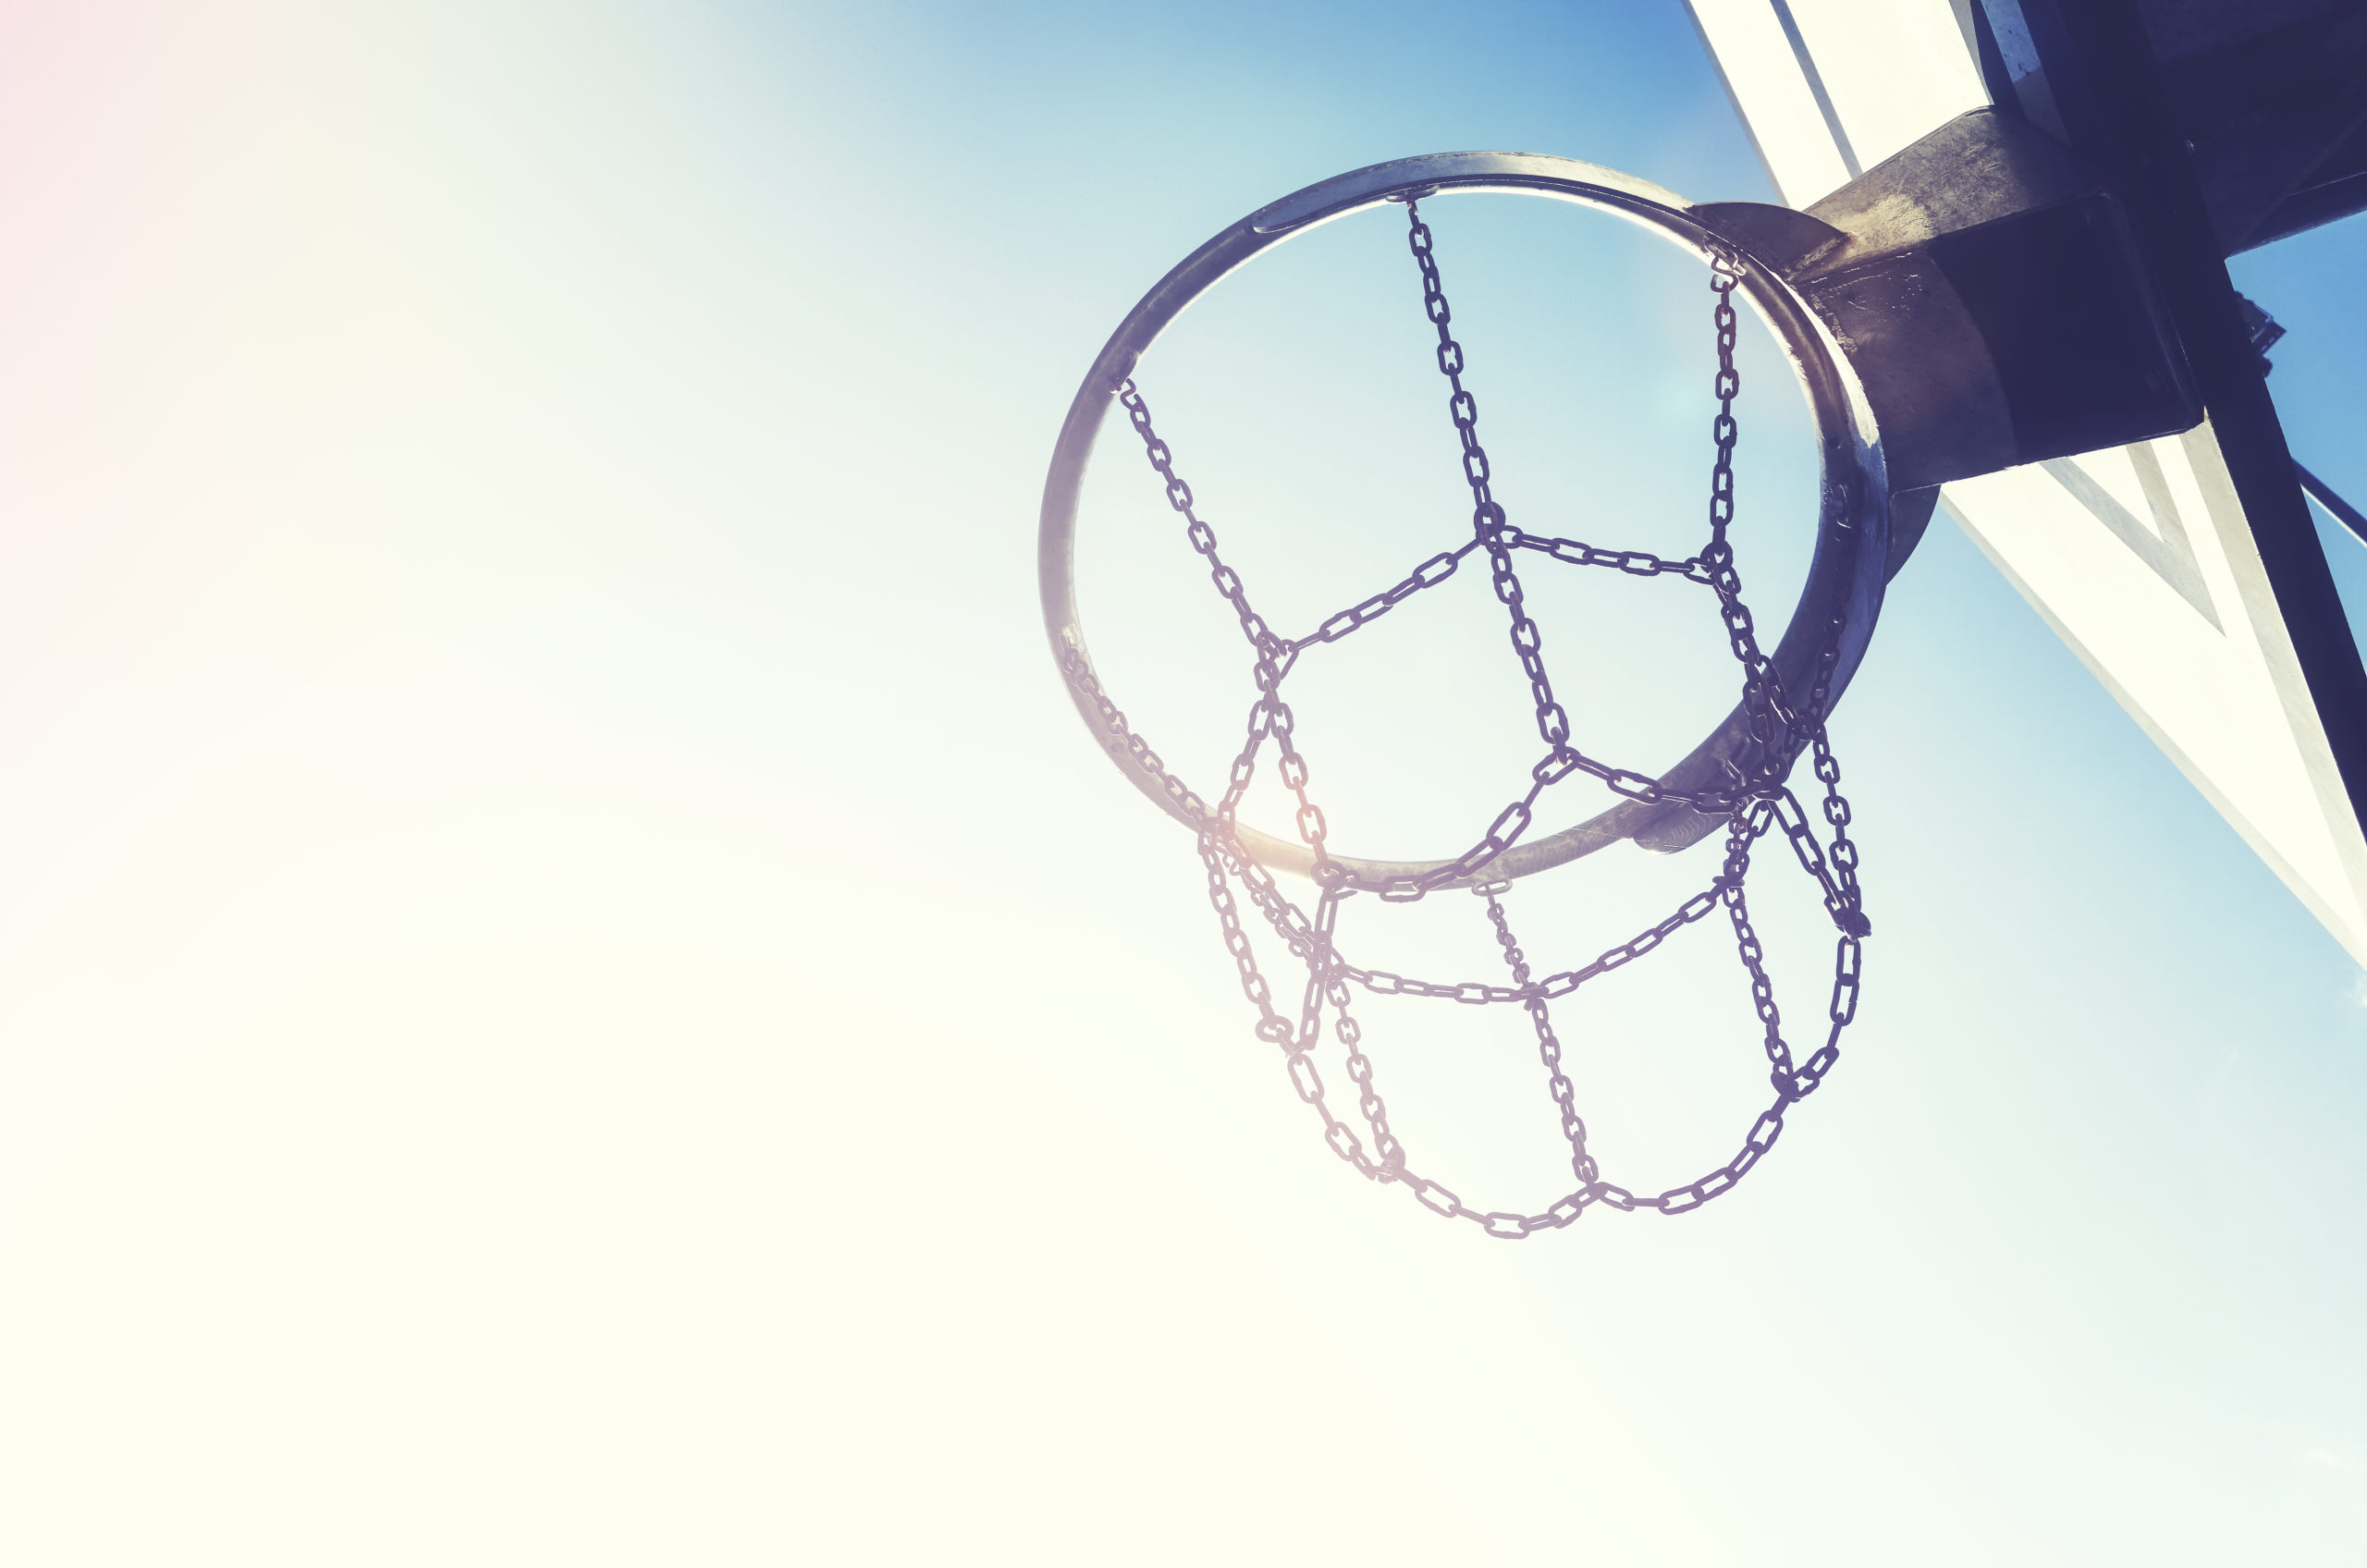 https://elements.envato.com/basketball-hoop-with-chain-net-at-sunset-PTVA4P2